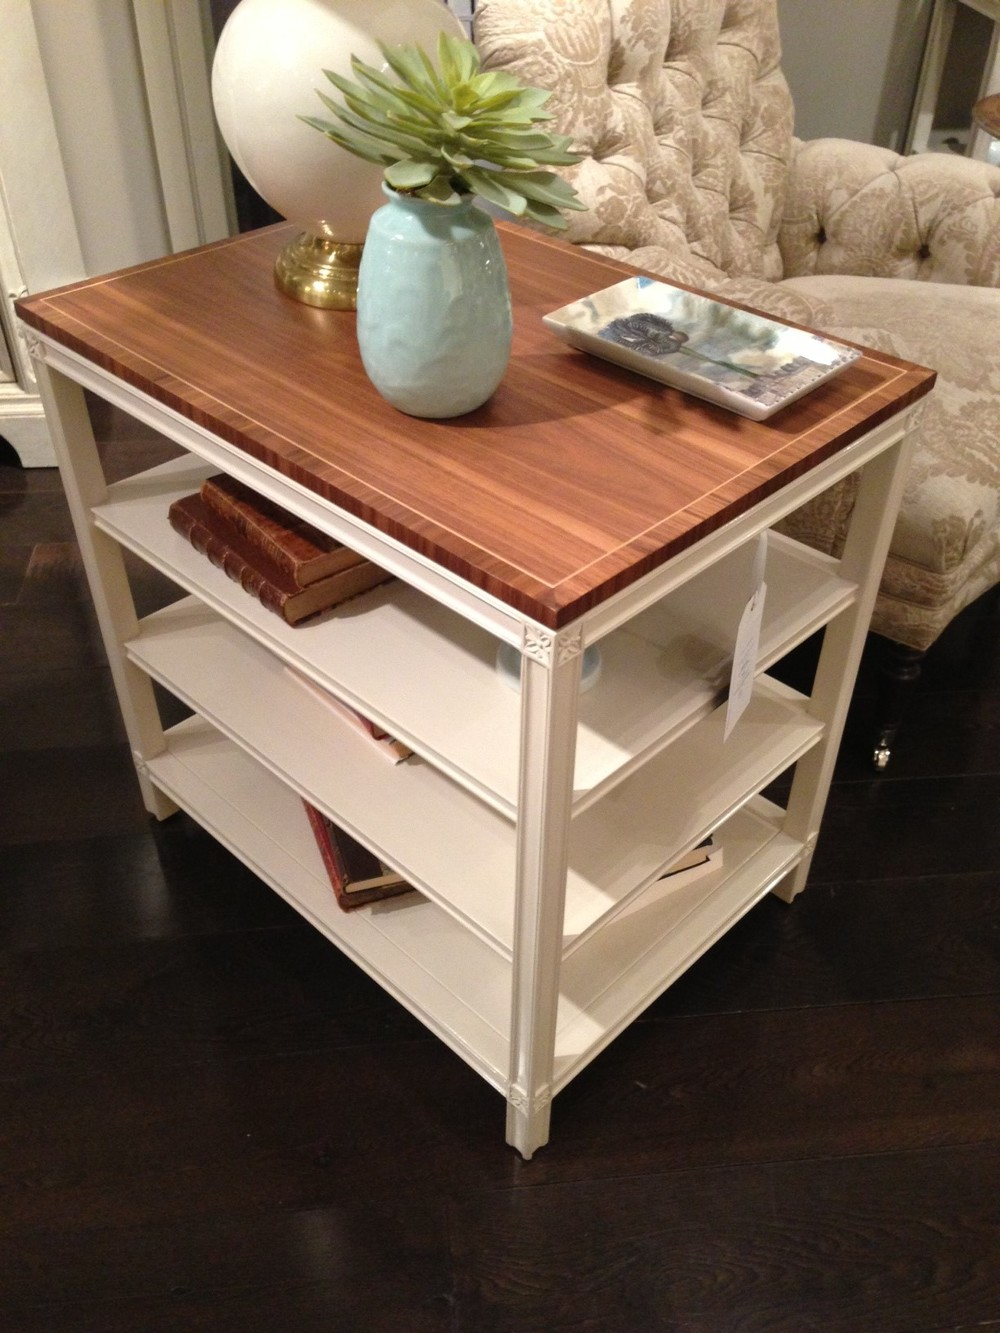 Side table w/wood top by Stanley Furniture. | #LVmkt, best, home, decor, furniture, interior design